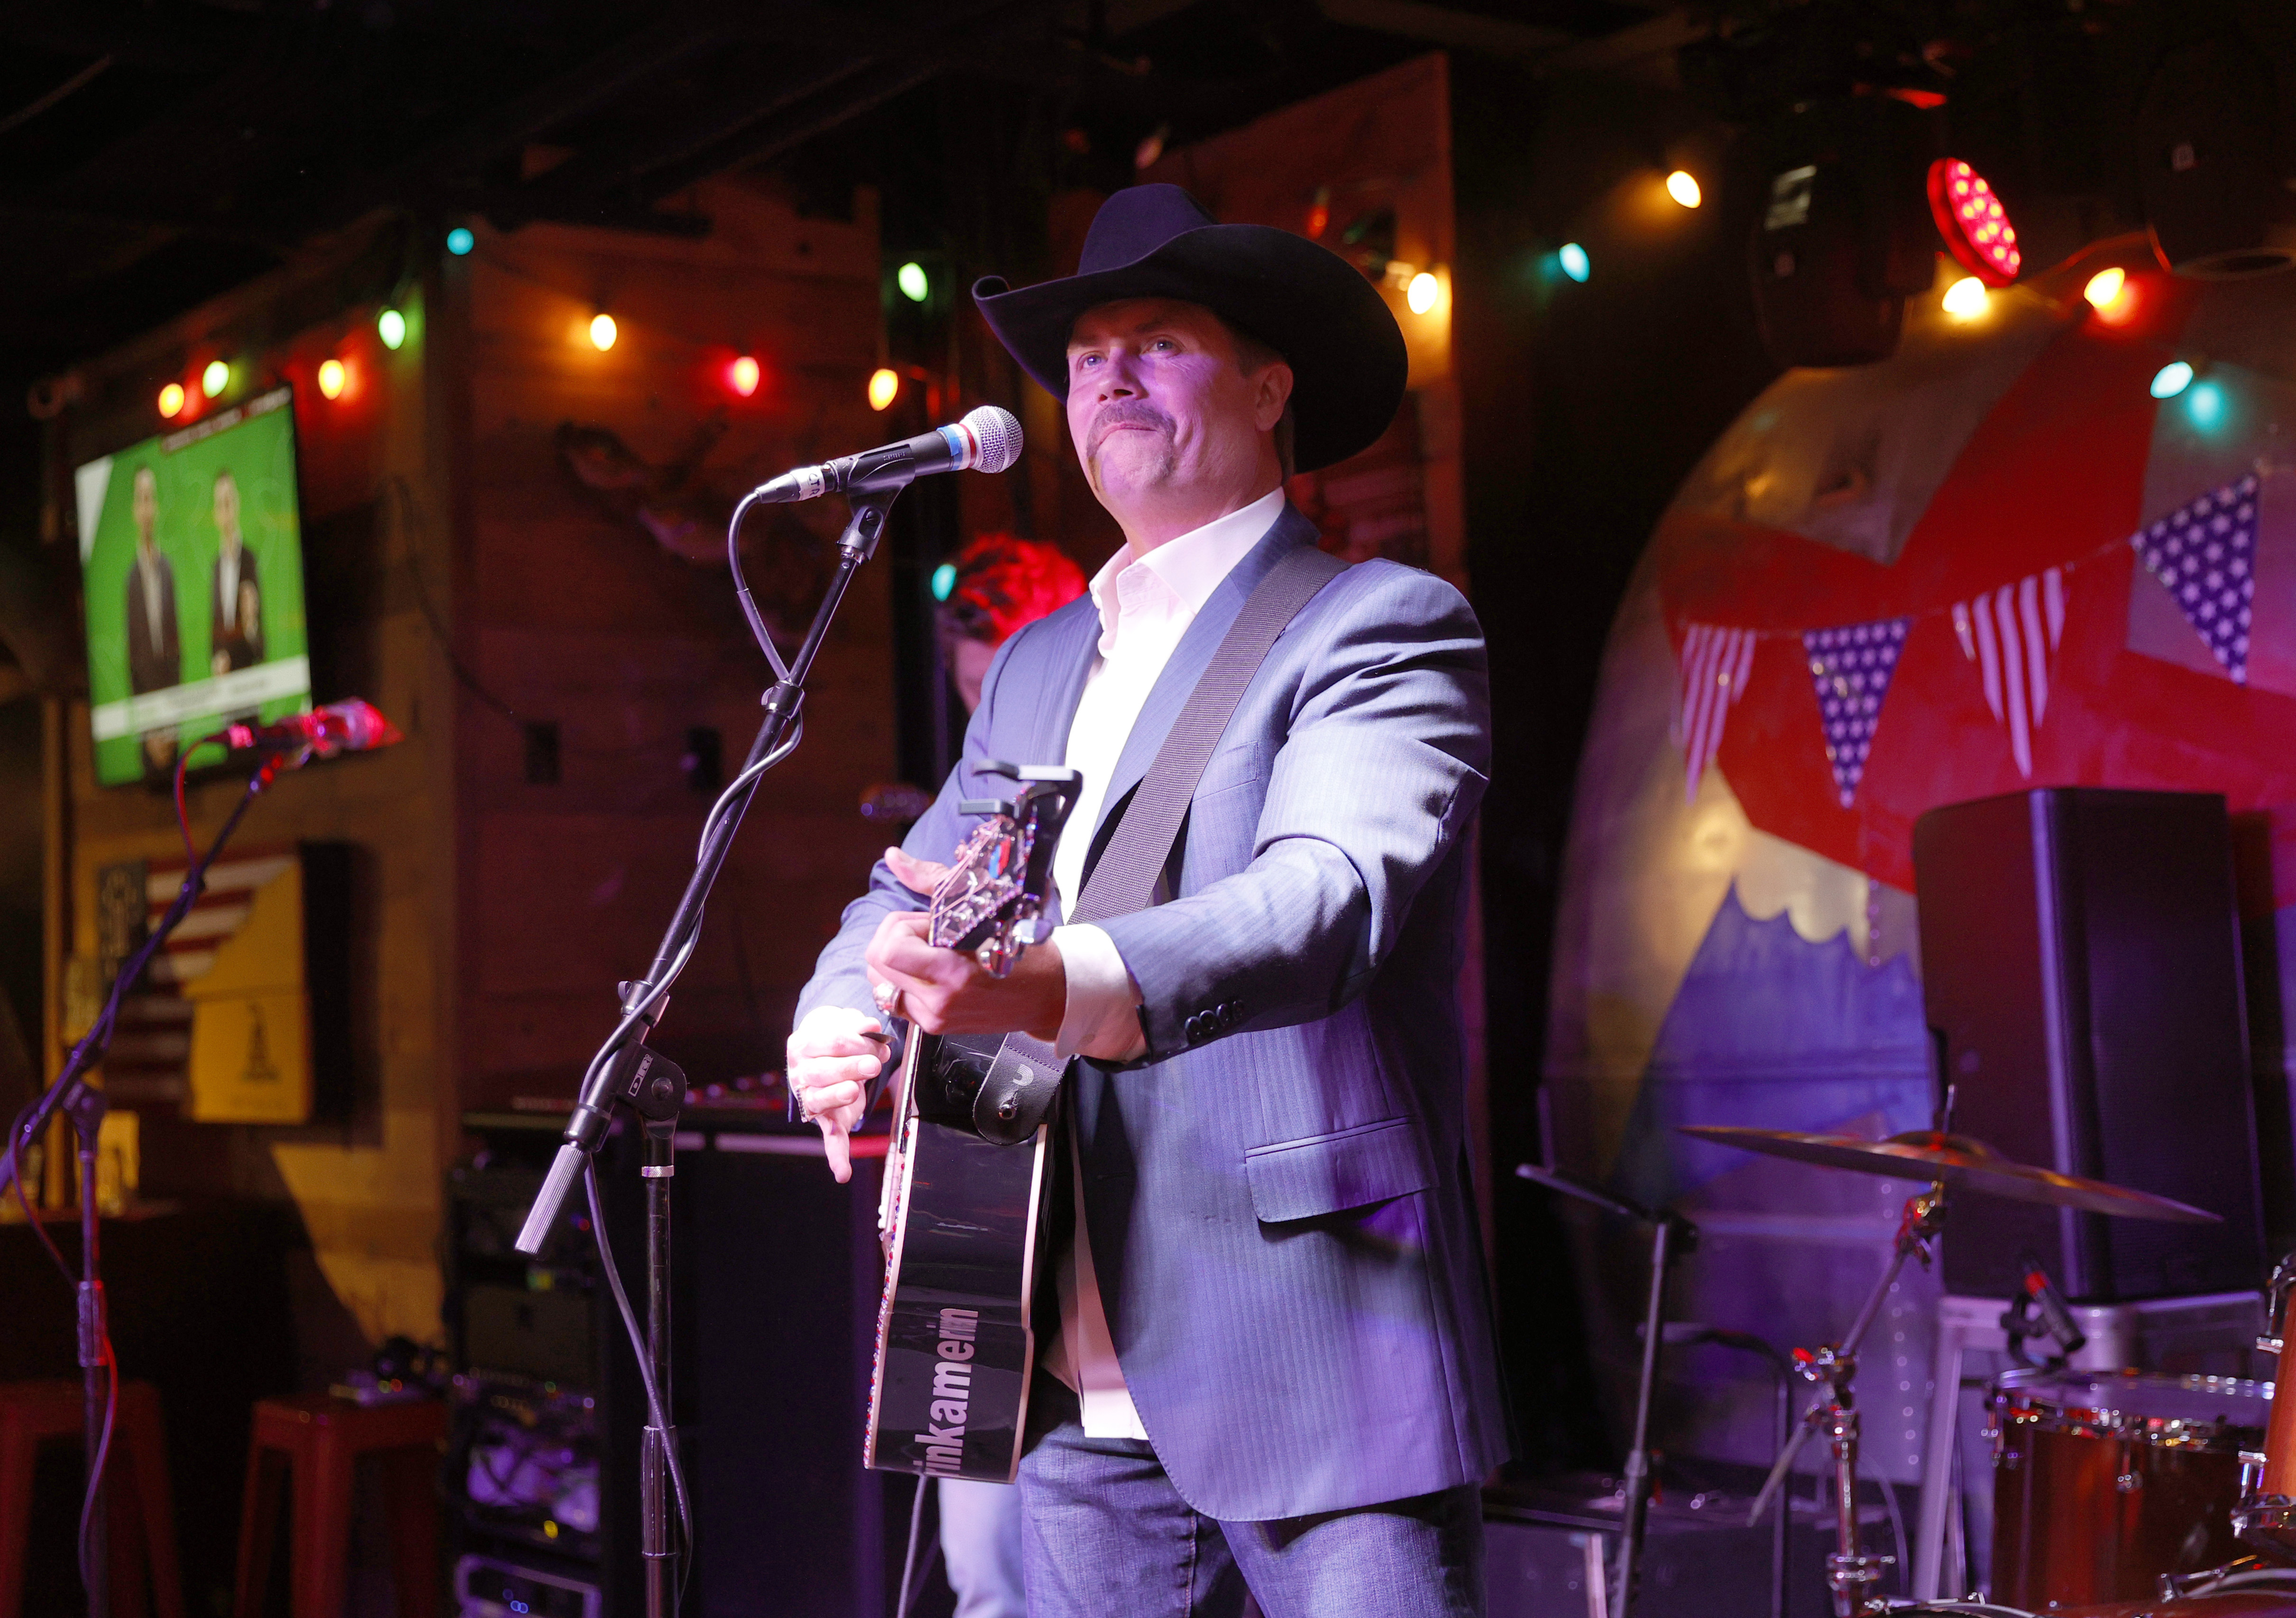 Country artist John Rich performs at Redneck Riviera Nashville in Nashville, Tennessee. (Photo by Jason Kempin/Getty Images)